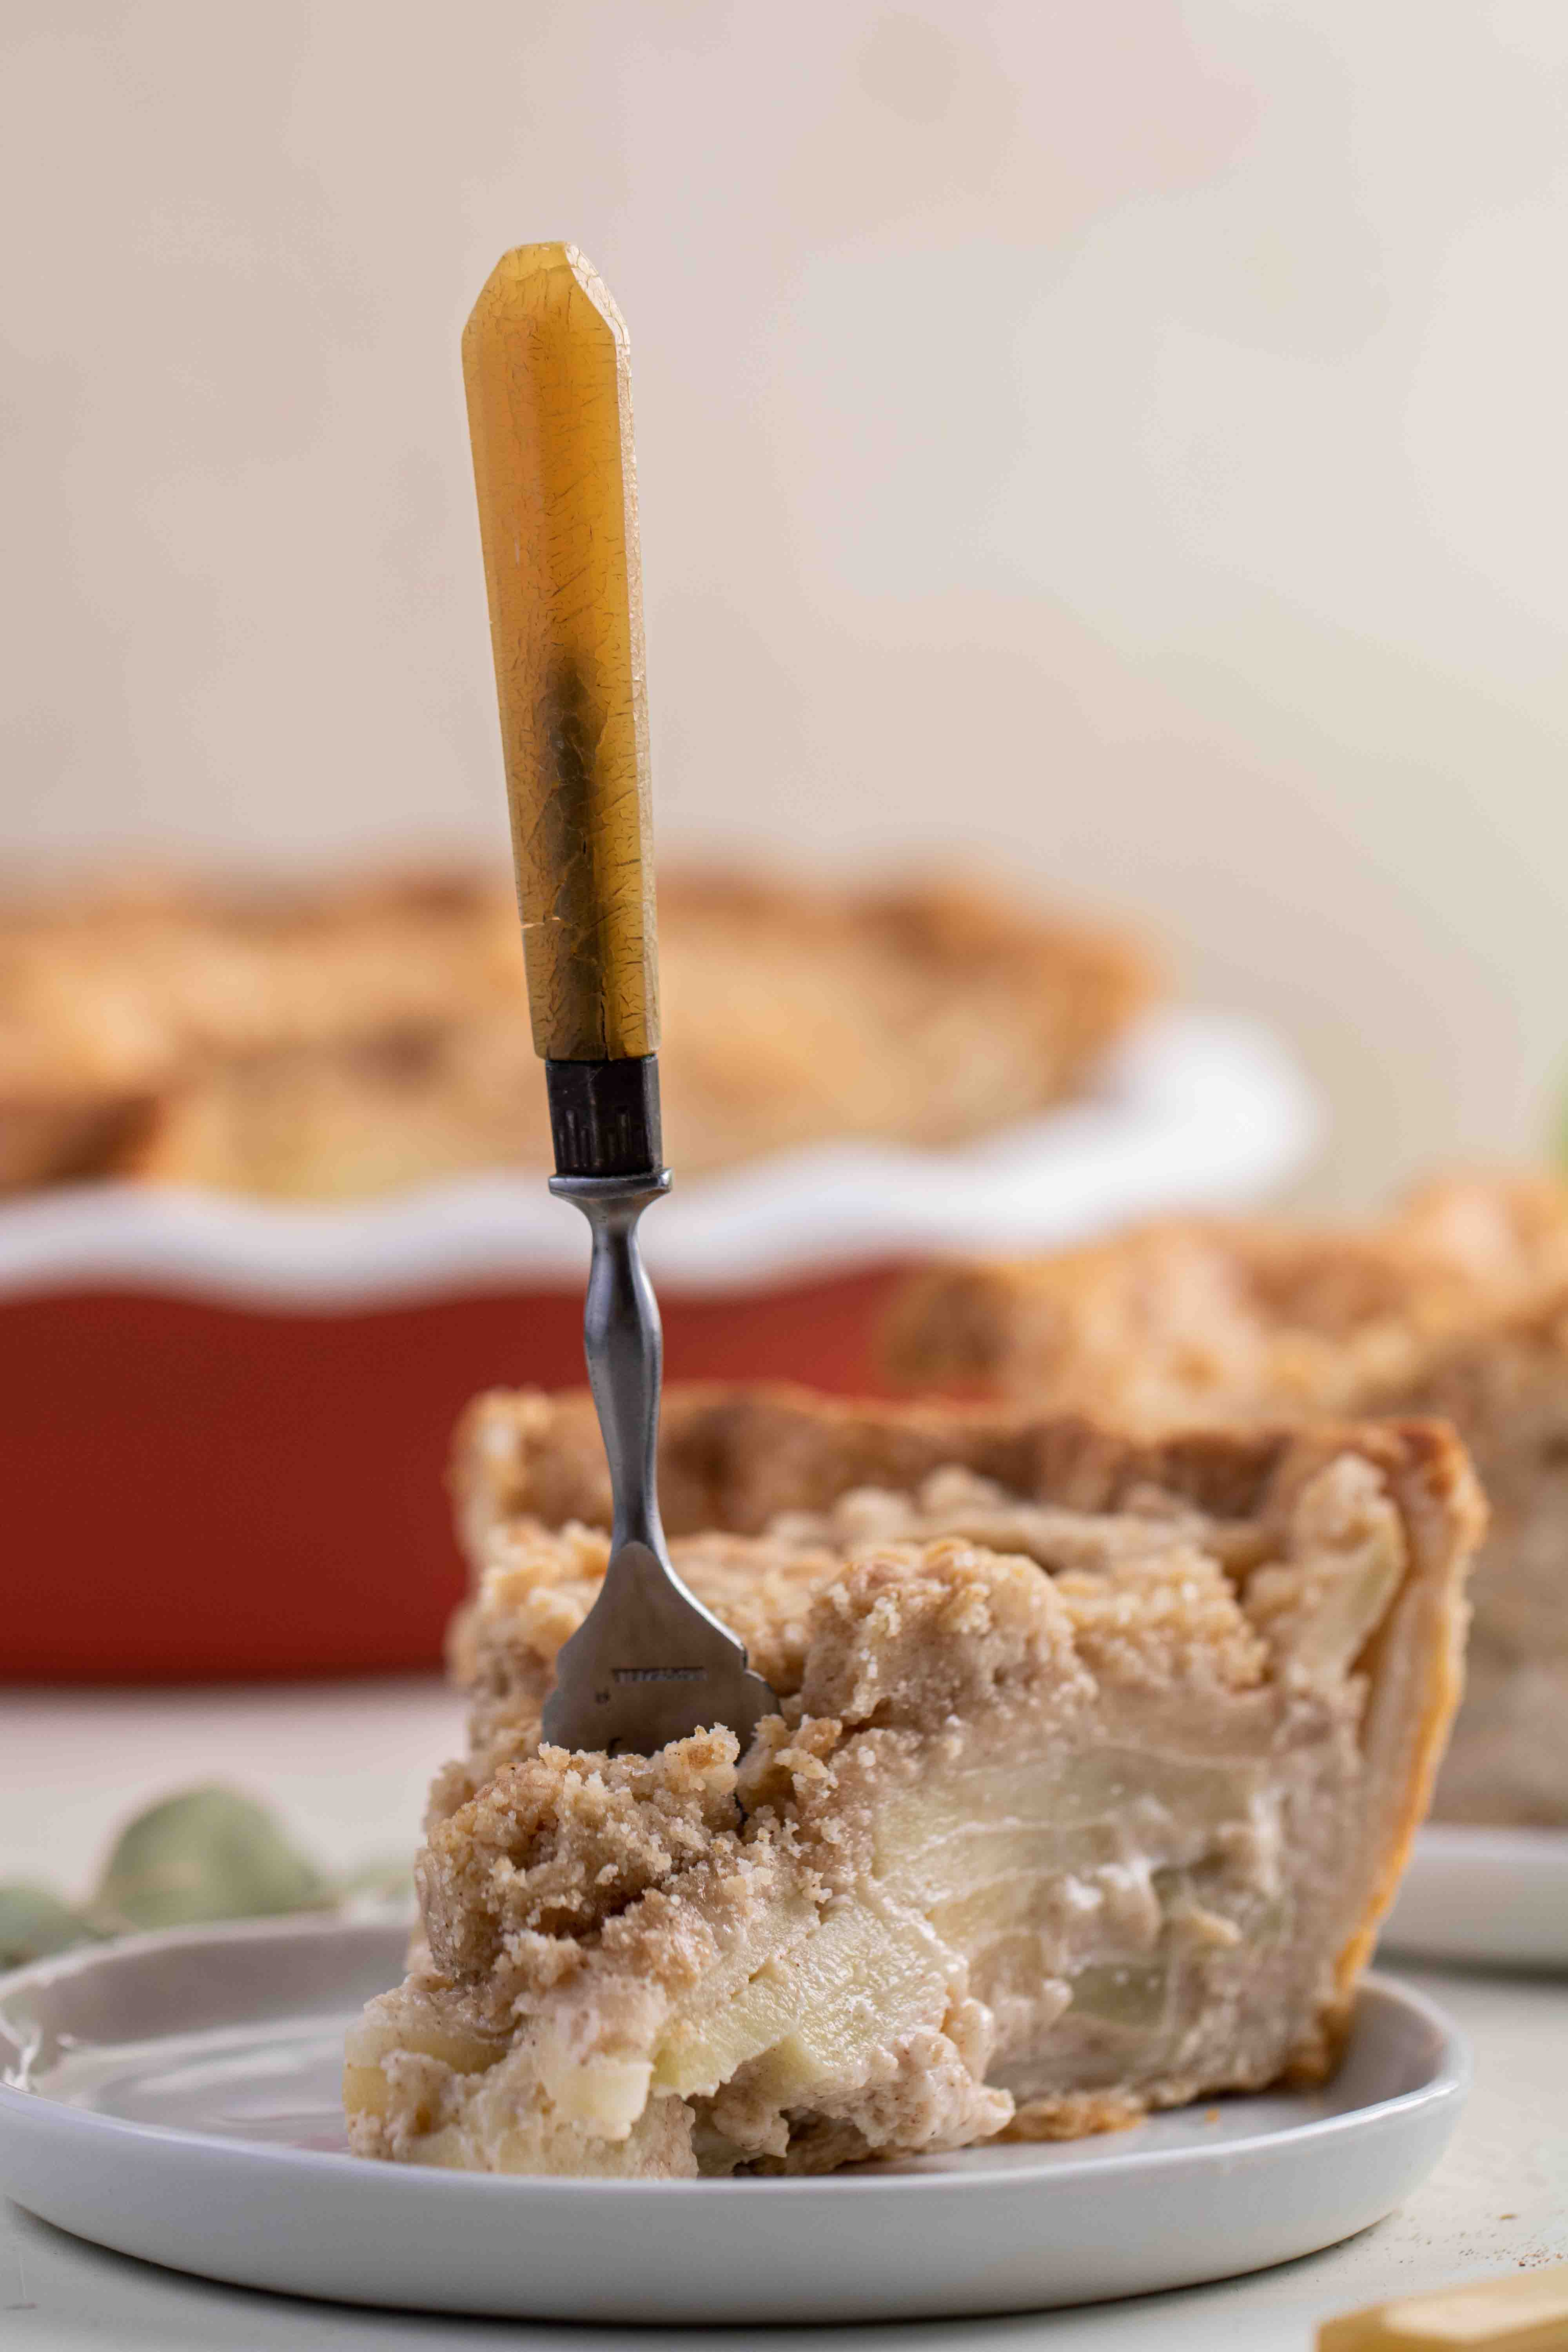 Apple pie slice with a fork inserted in the center